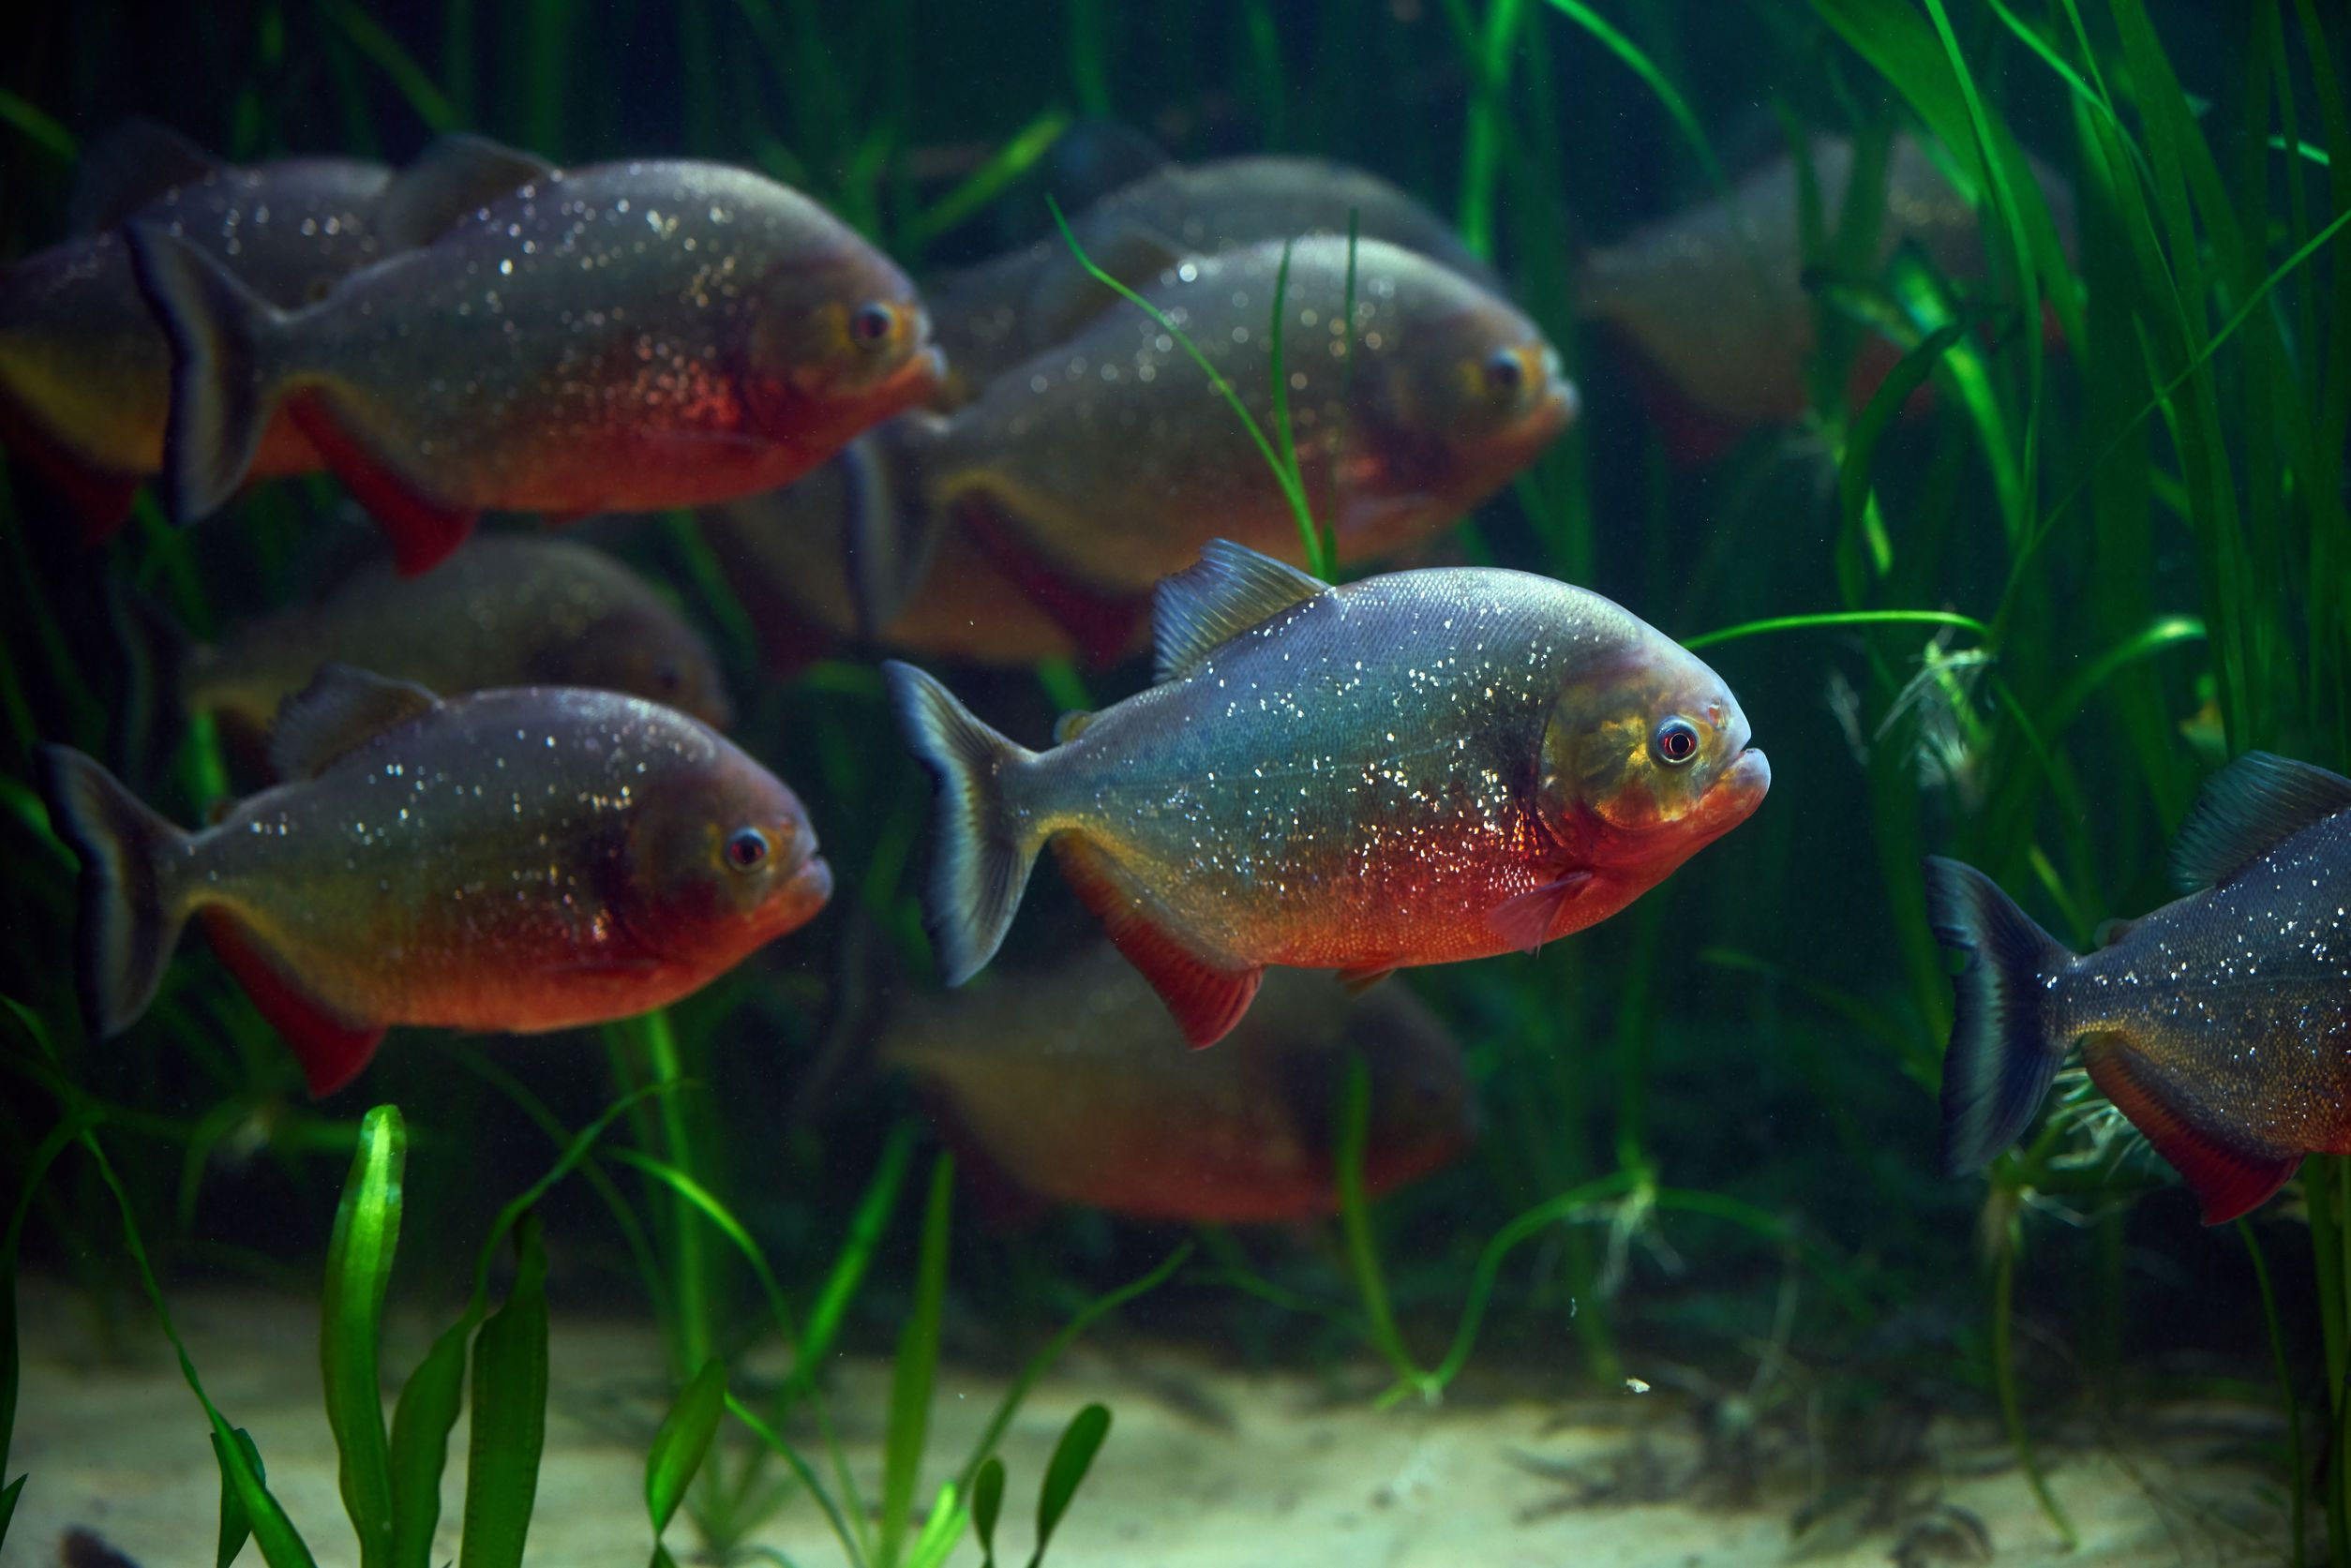 Pin On The Coolest Rare Exciting Scary And Colorful Freshwater Aquarium Fish